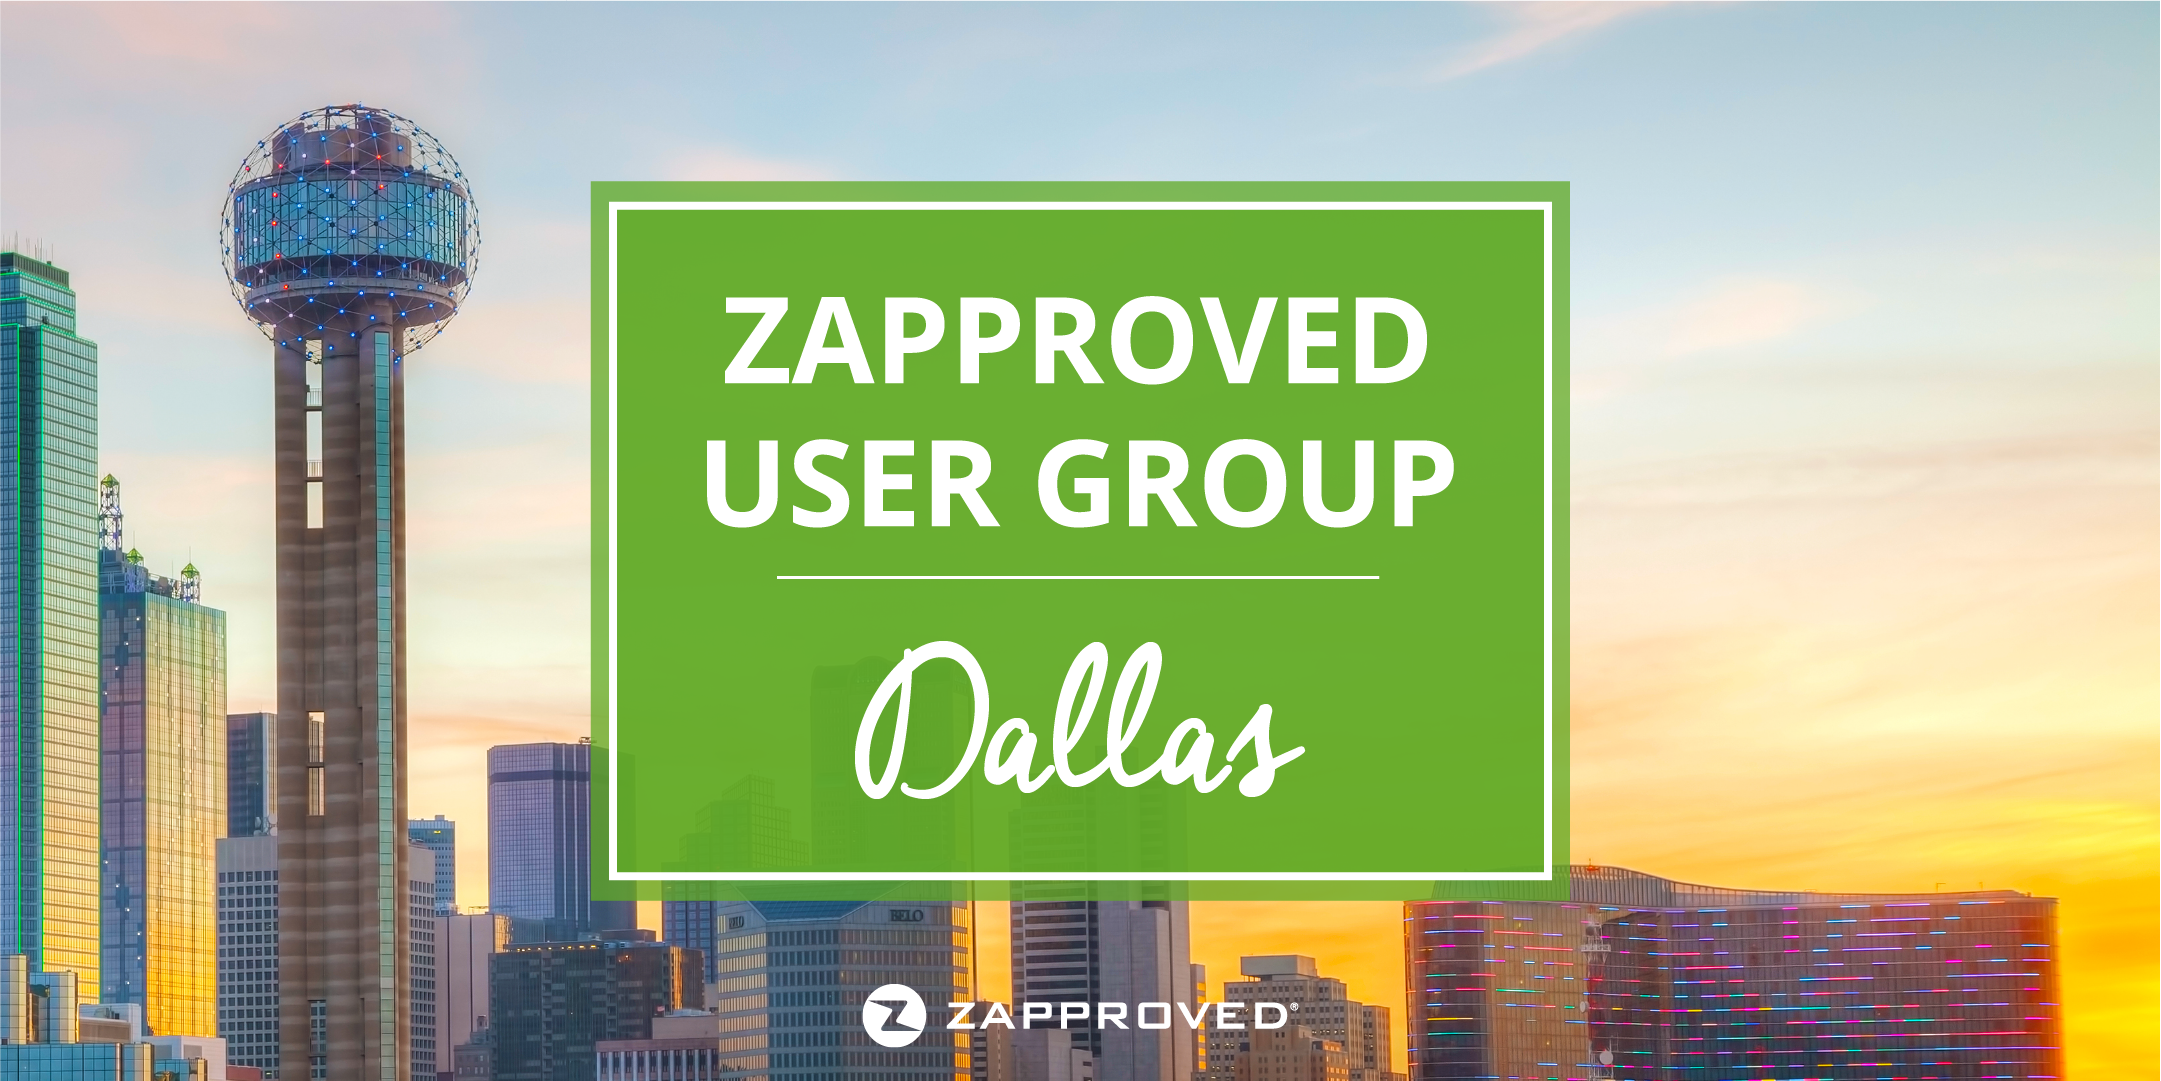 Zapproved User Group Dallas Texas